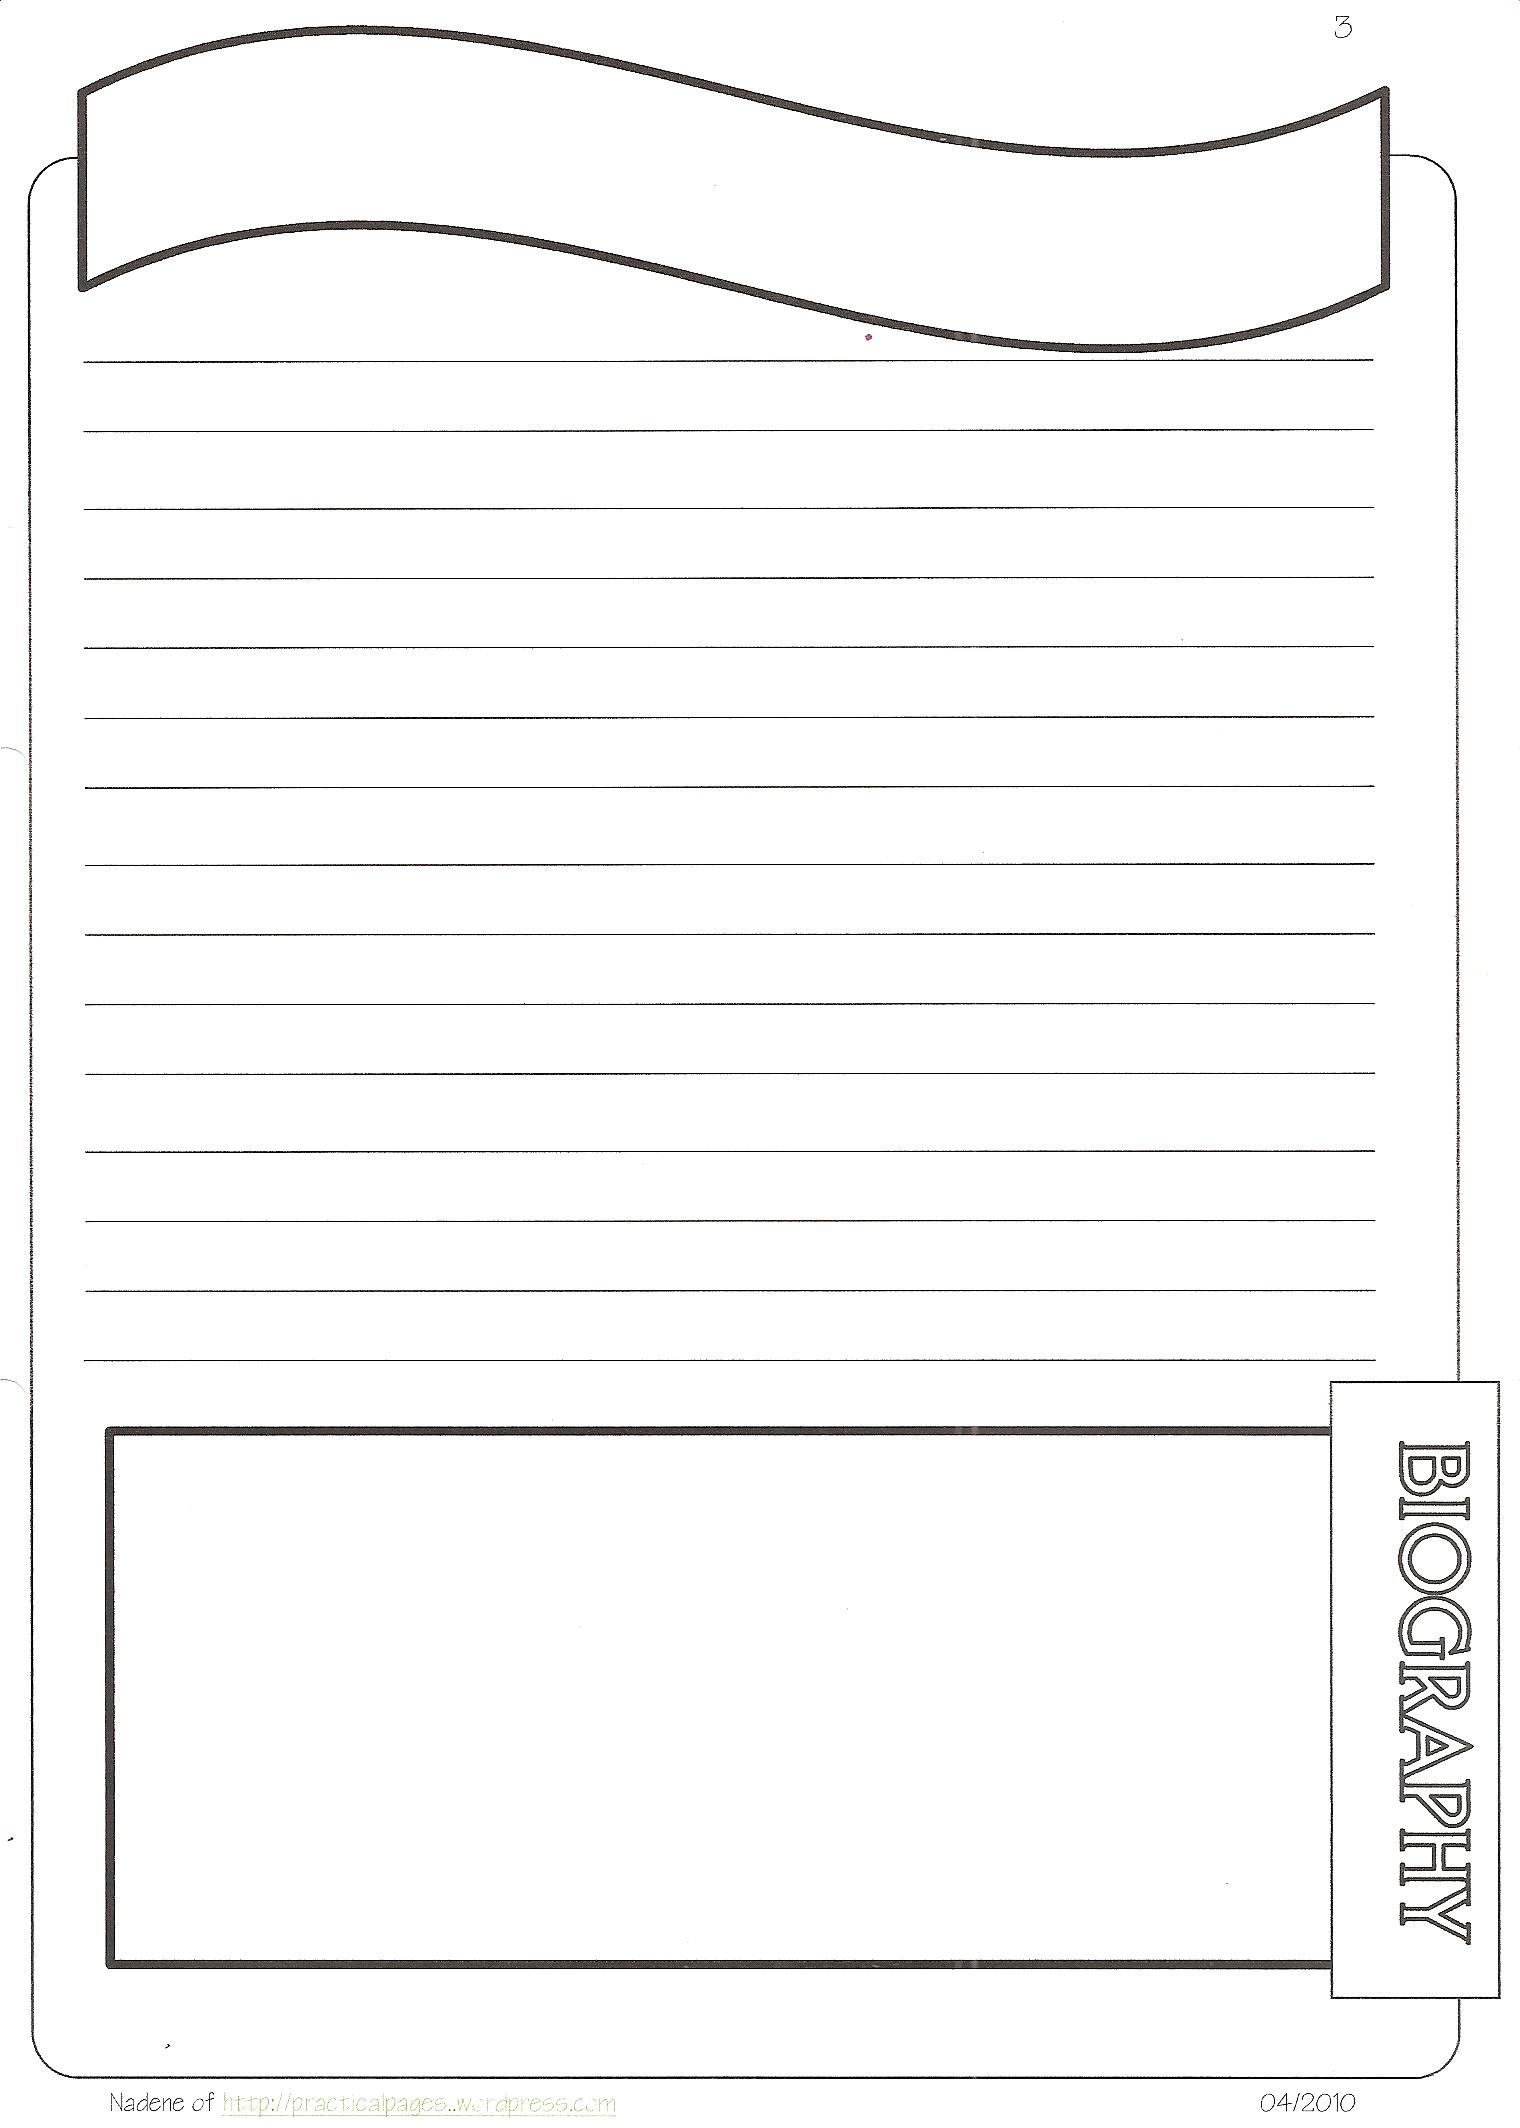 New Biography Notebook Page Templates yDc5h58L